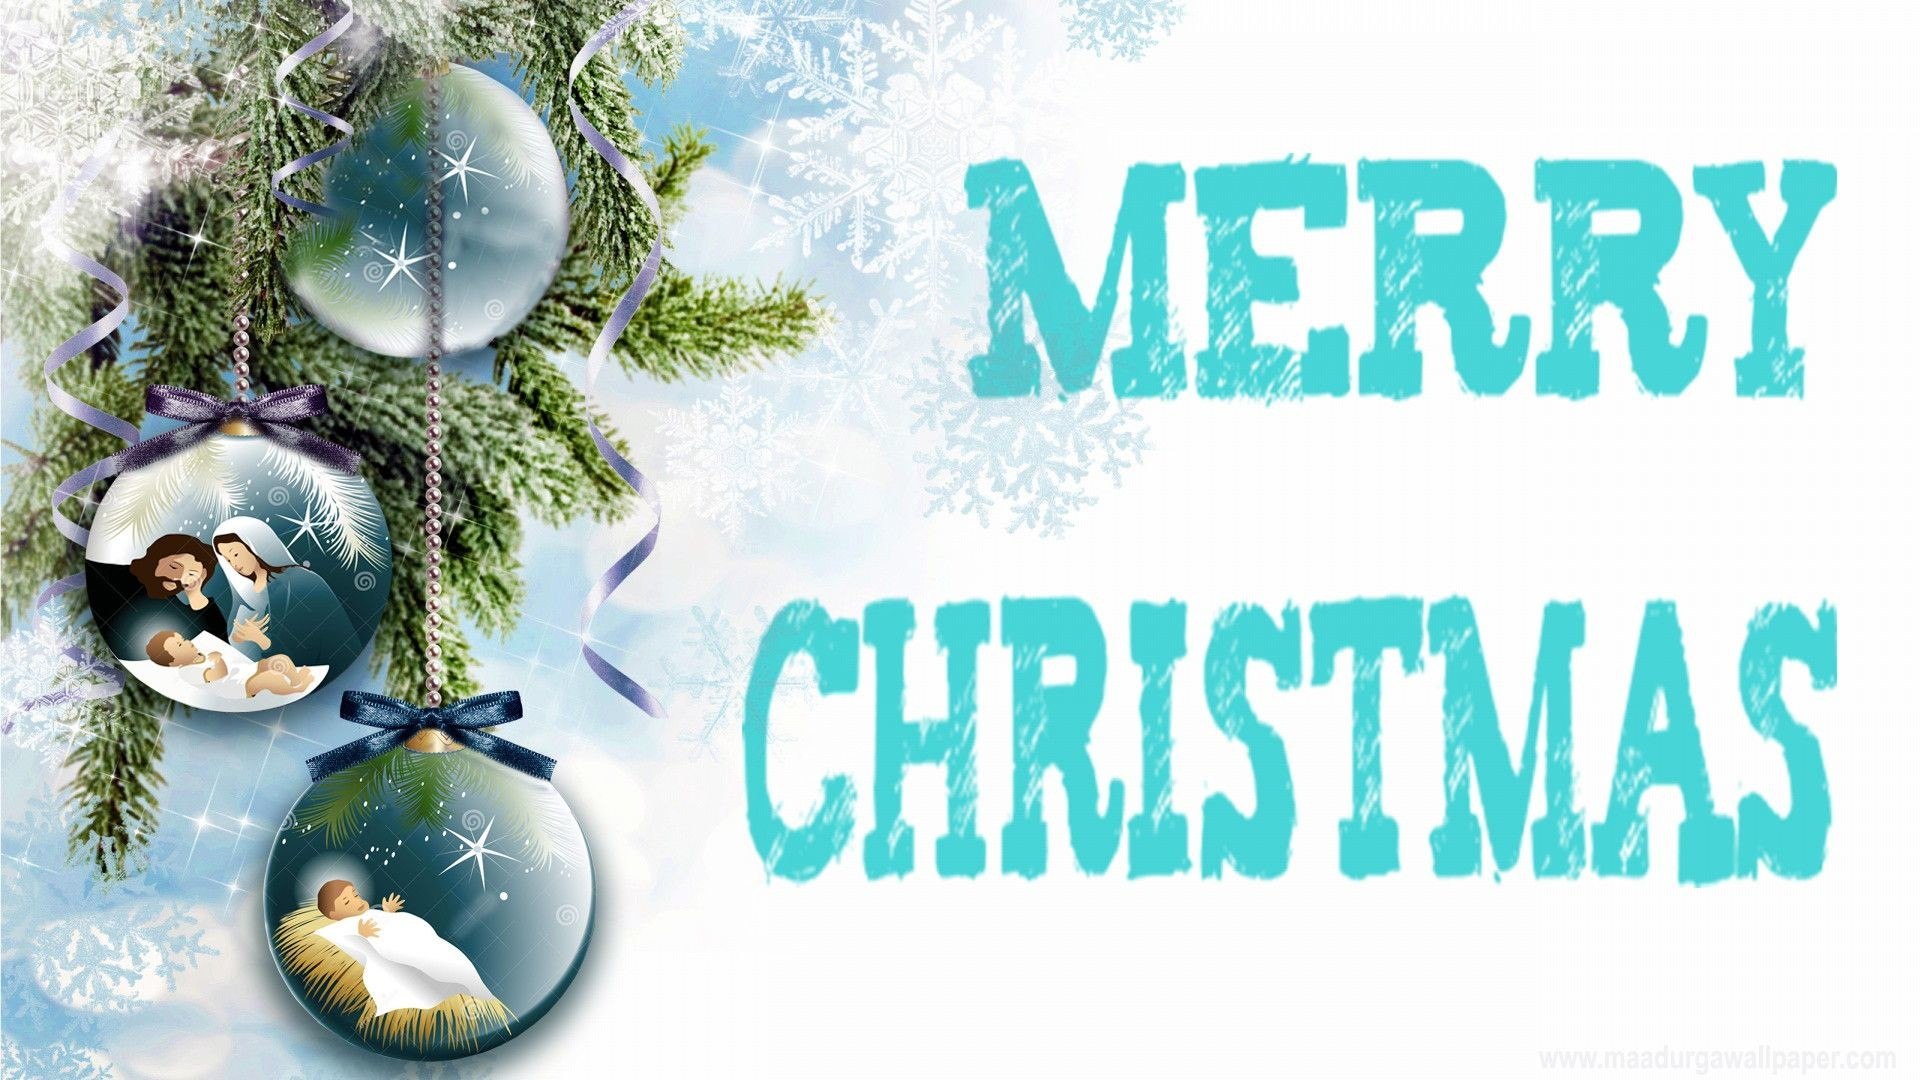 Christmas Jesus Wallpaper.Christmas Jesus Wallpapers 66 Background Pictures